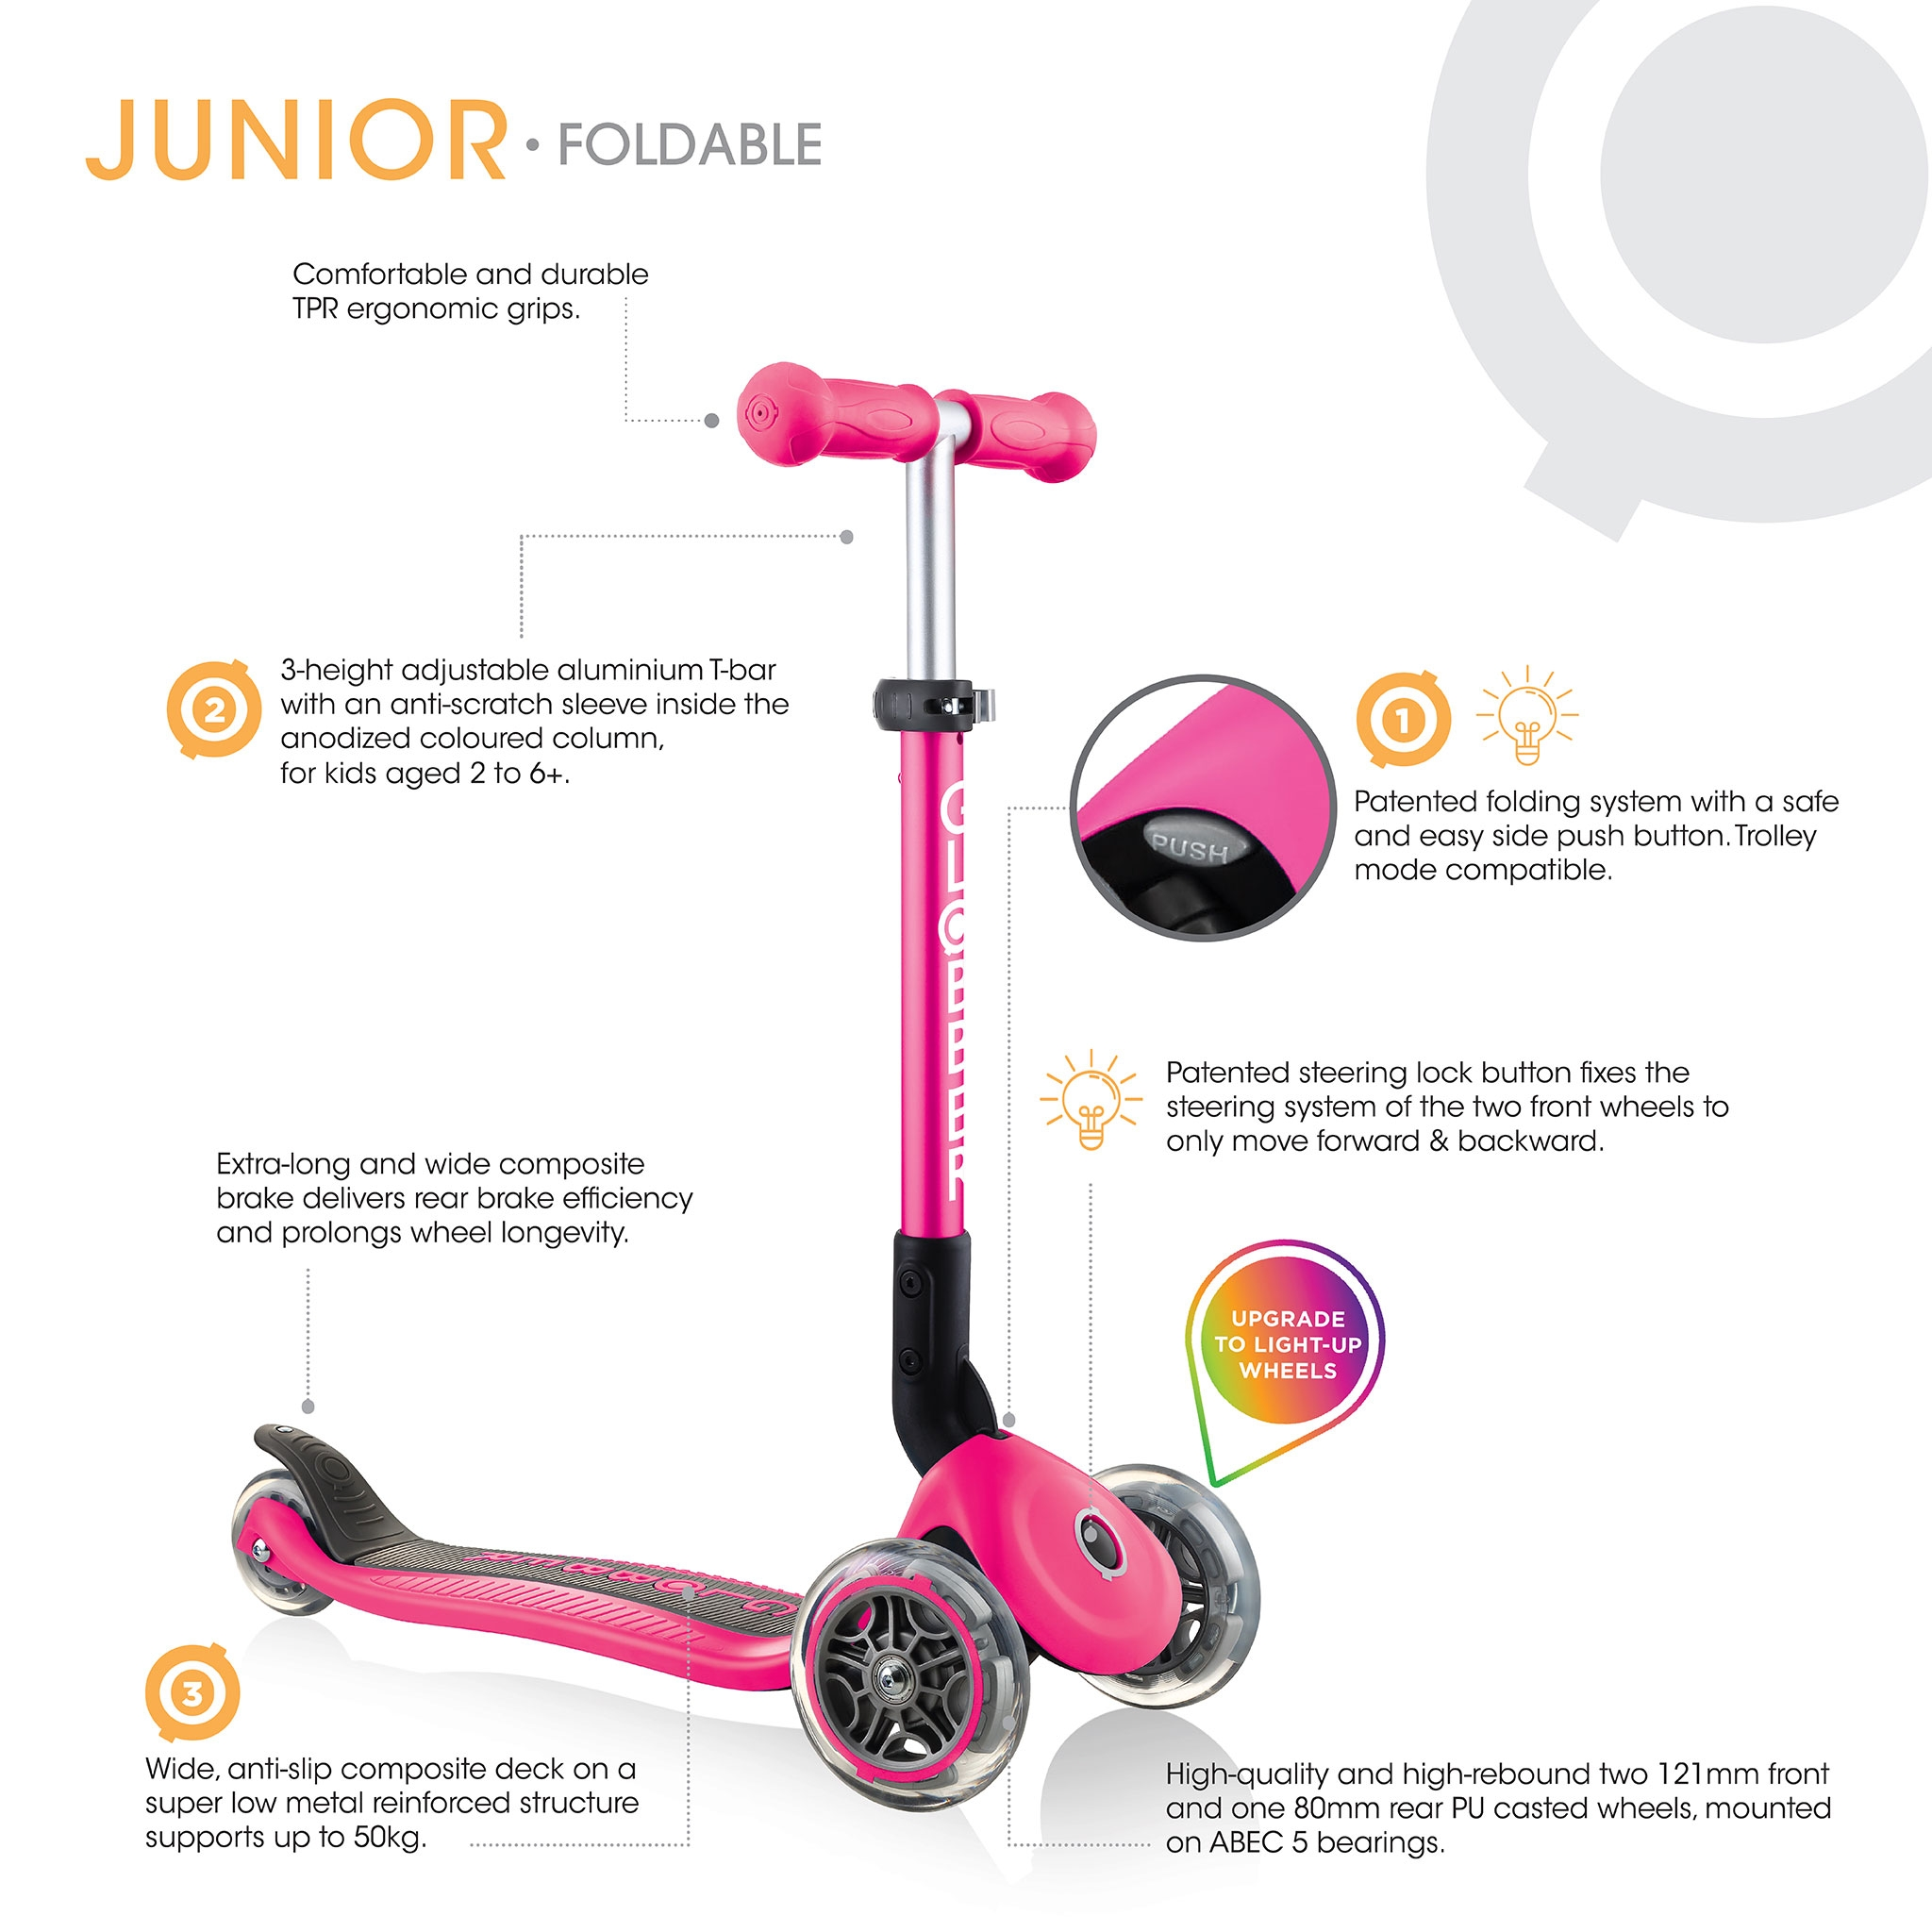 3-wheel-foldable-scooter-for-toddlers-aged-2-and-above-Globber-JUNIOR-FOLDABLE